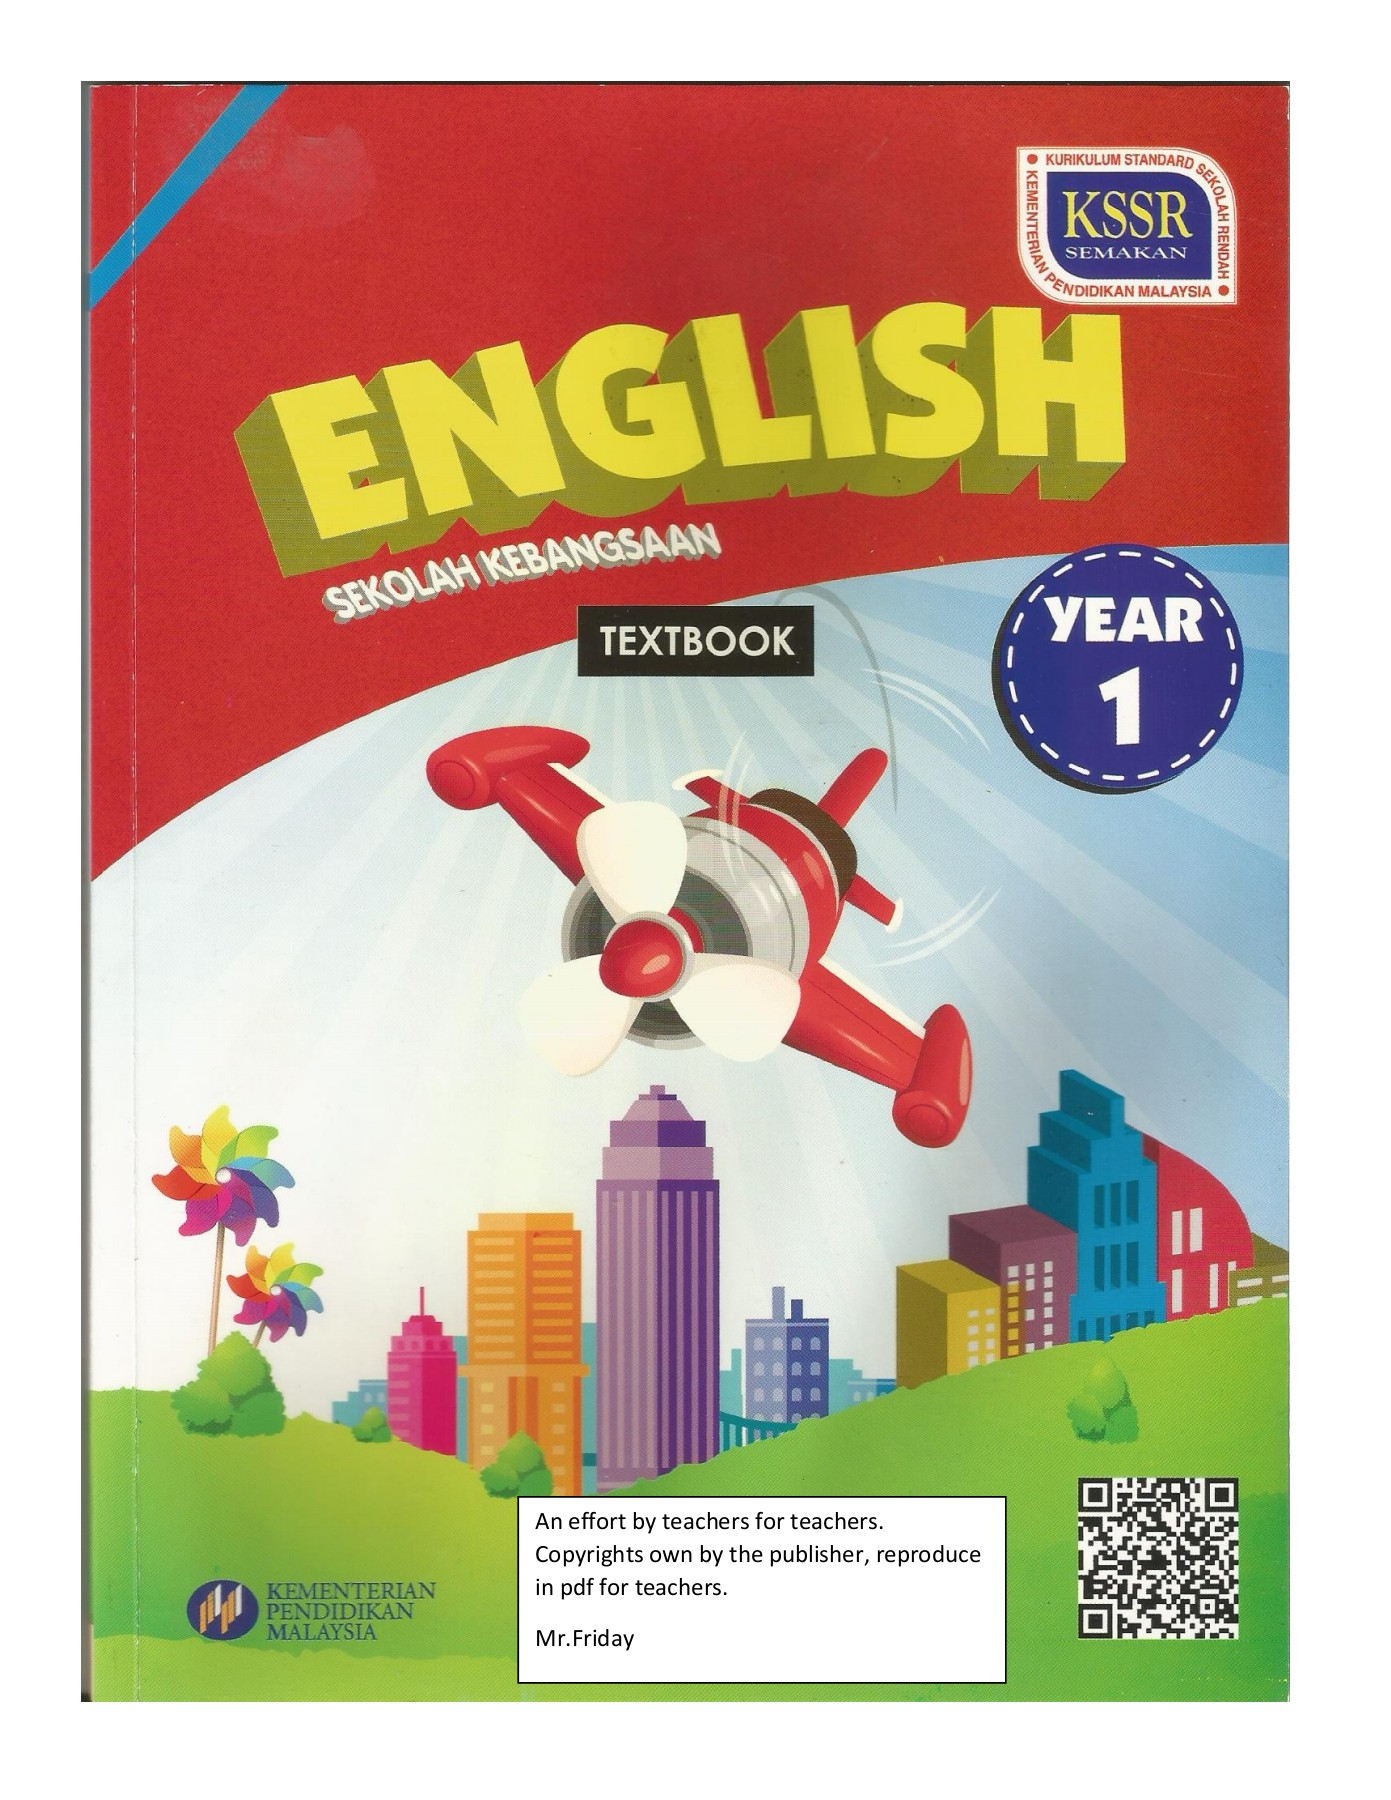 YEAR 1 (REVISED) 2017 ENGLISH TEXTBOOK Pages 1 - 50 - Text Version